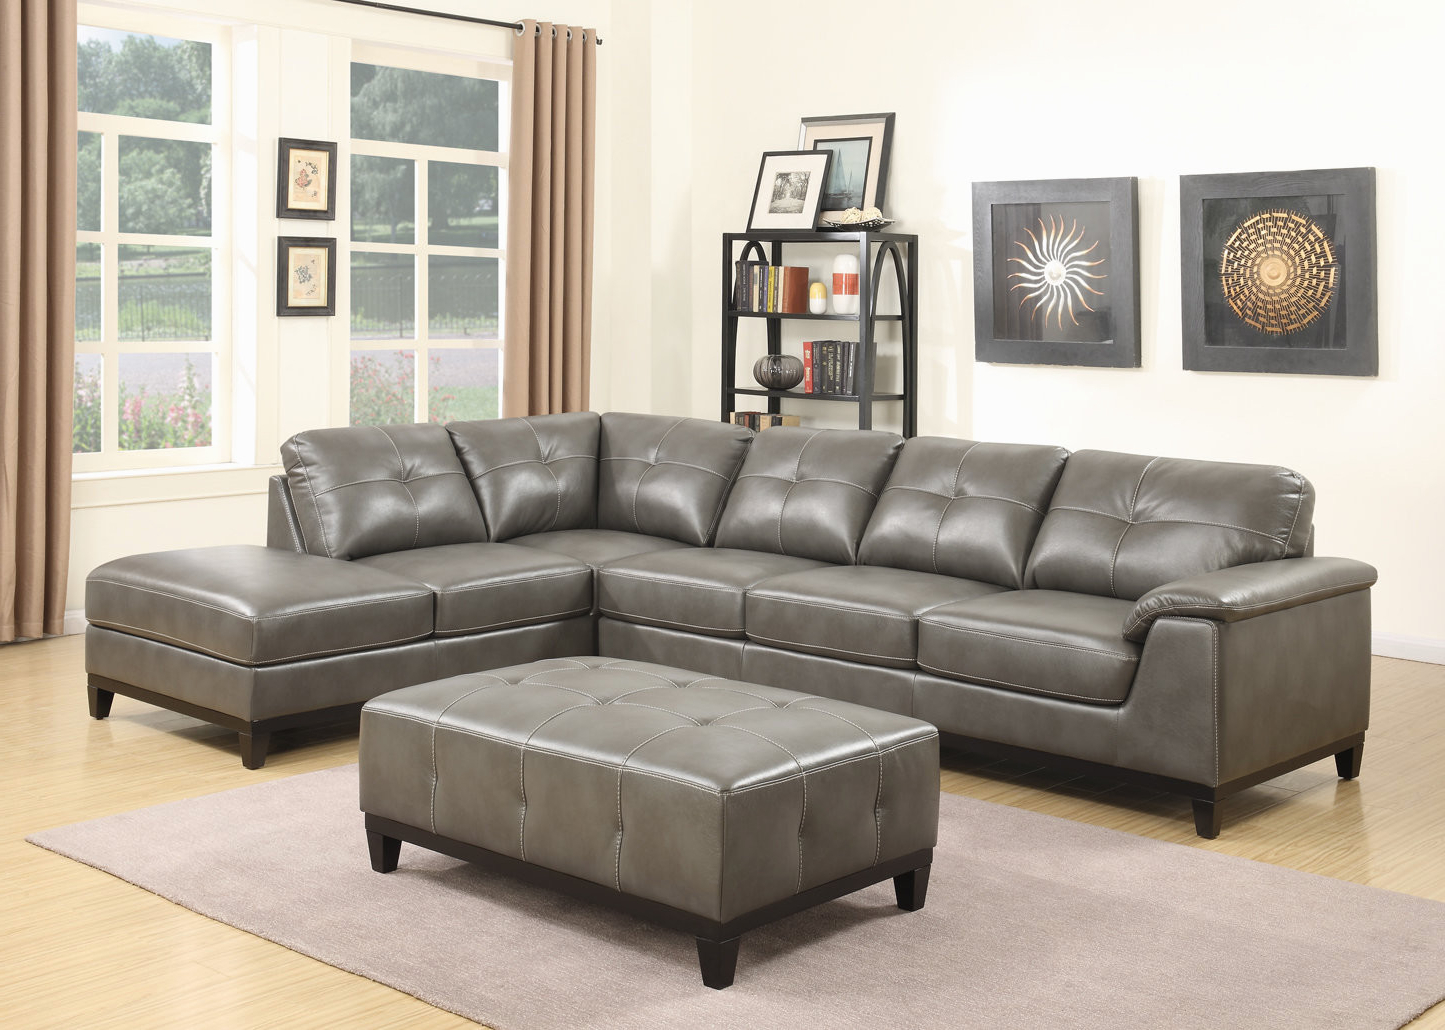 Most Recently Released Living Room Sofa With Chaise Beautiful Trent Austin Design Lonato In Aquarius Light Grey 2 Piece Sectionals With Raf Chaise (View 15 of 20)